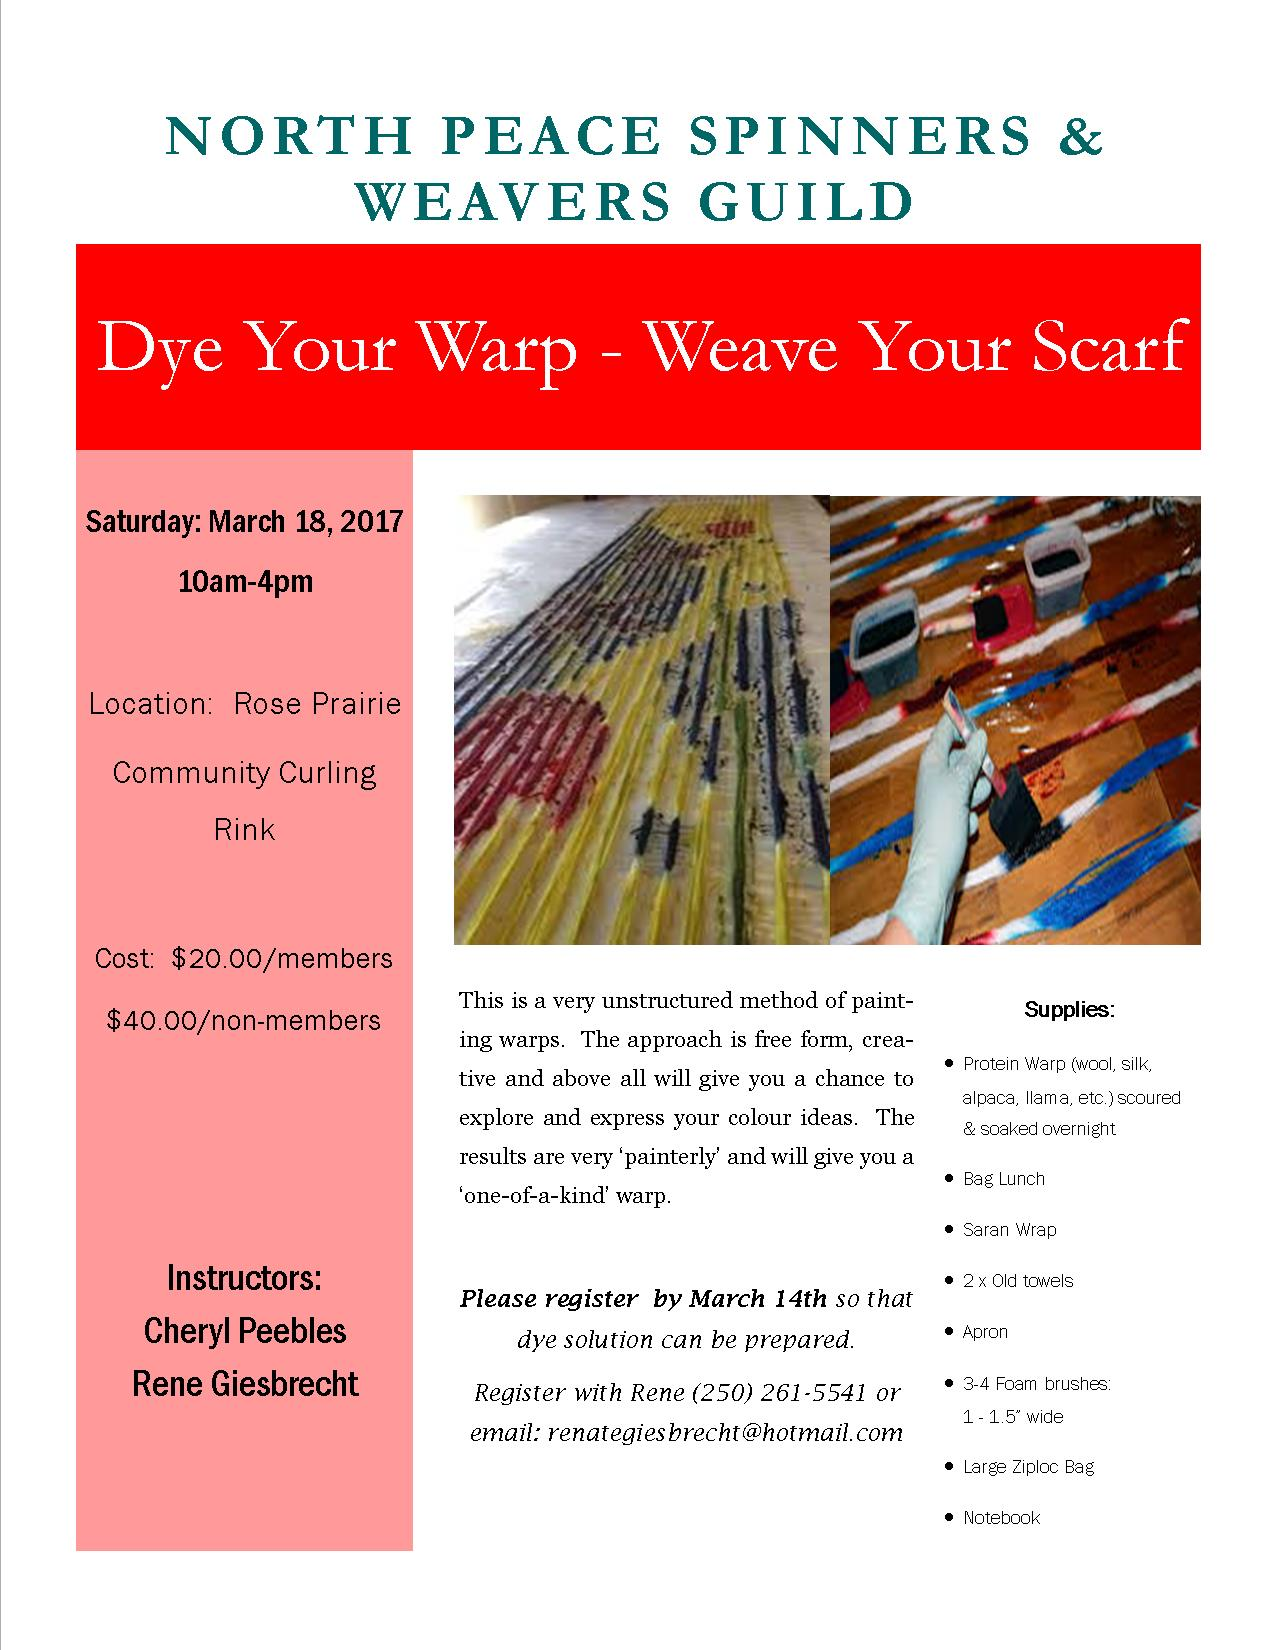 NPSWG Poster - Dye Your Warp - Weave Your Scarf